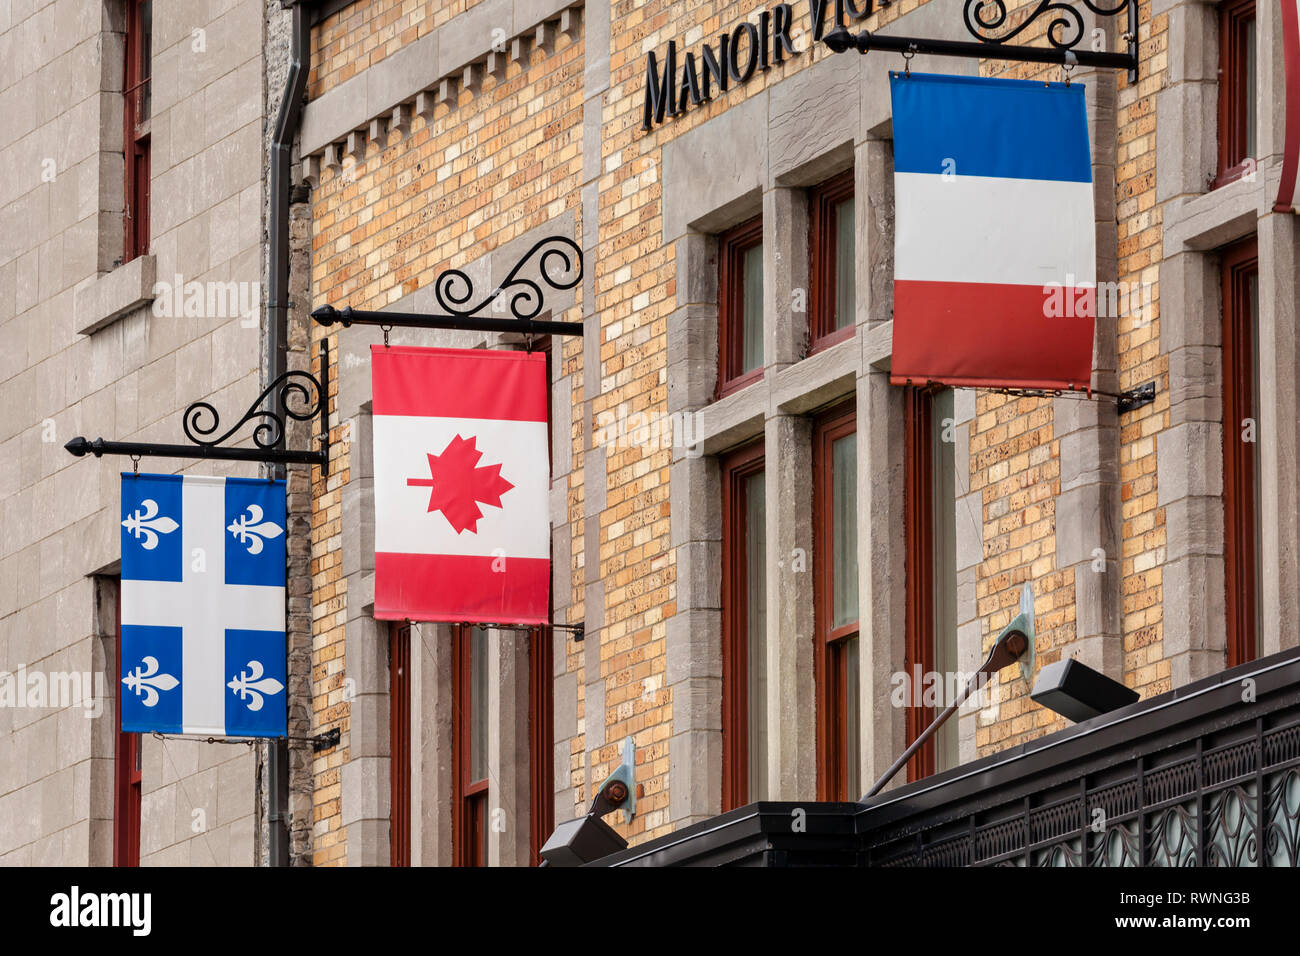 The National Flags Of Canada And France Hanging With The Provincial Flag Of Quebec In Quebec City Stock Photo Alamy